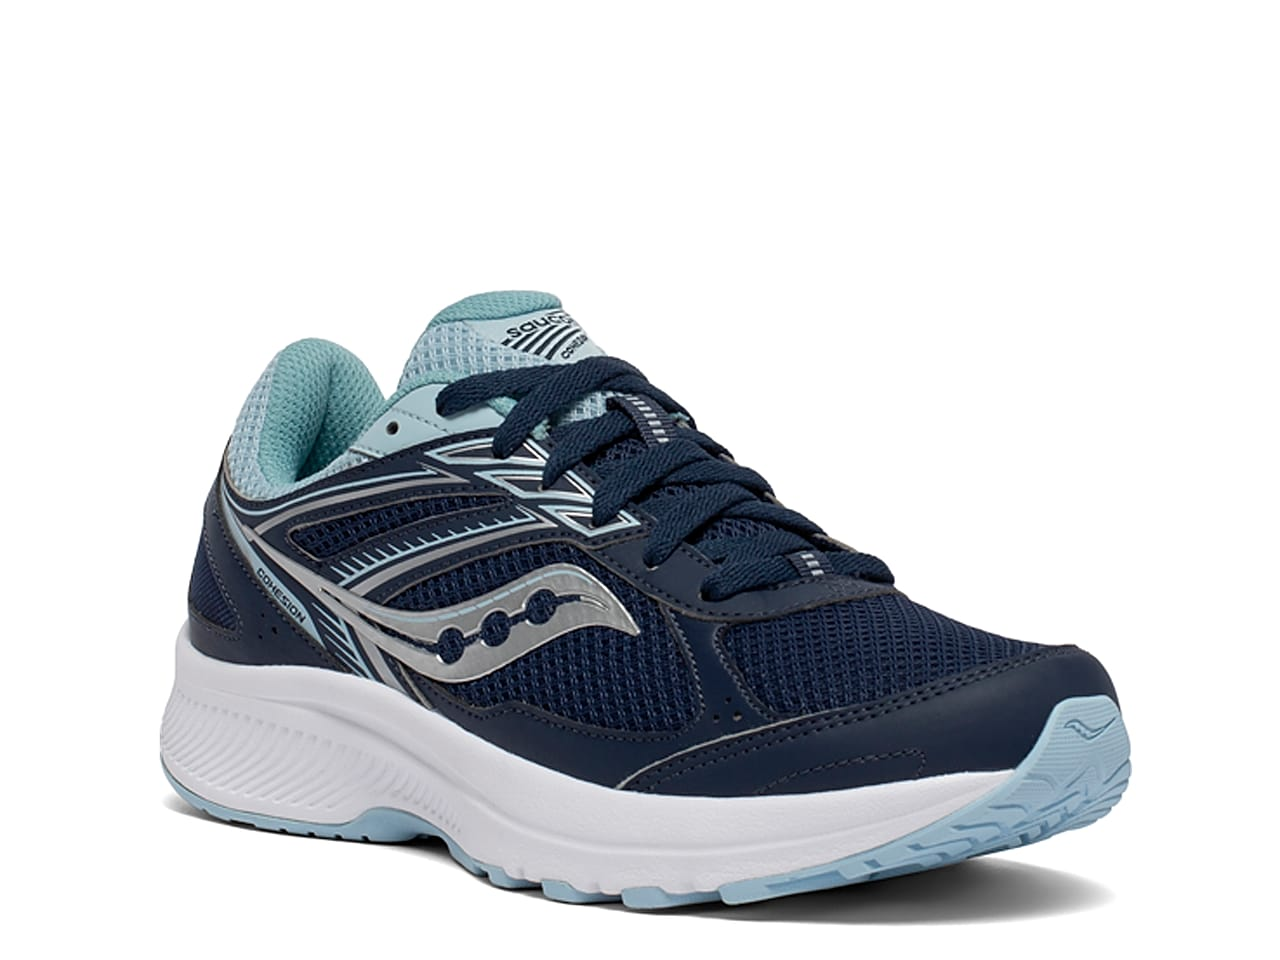 Cohesion 14 Running Shoe - Women's